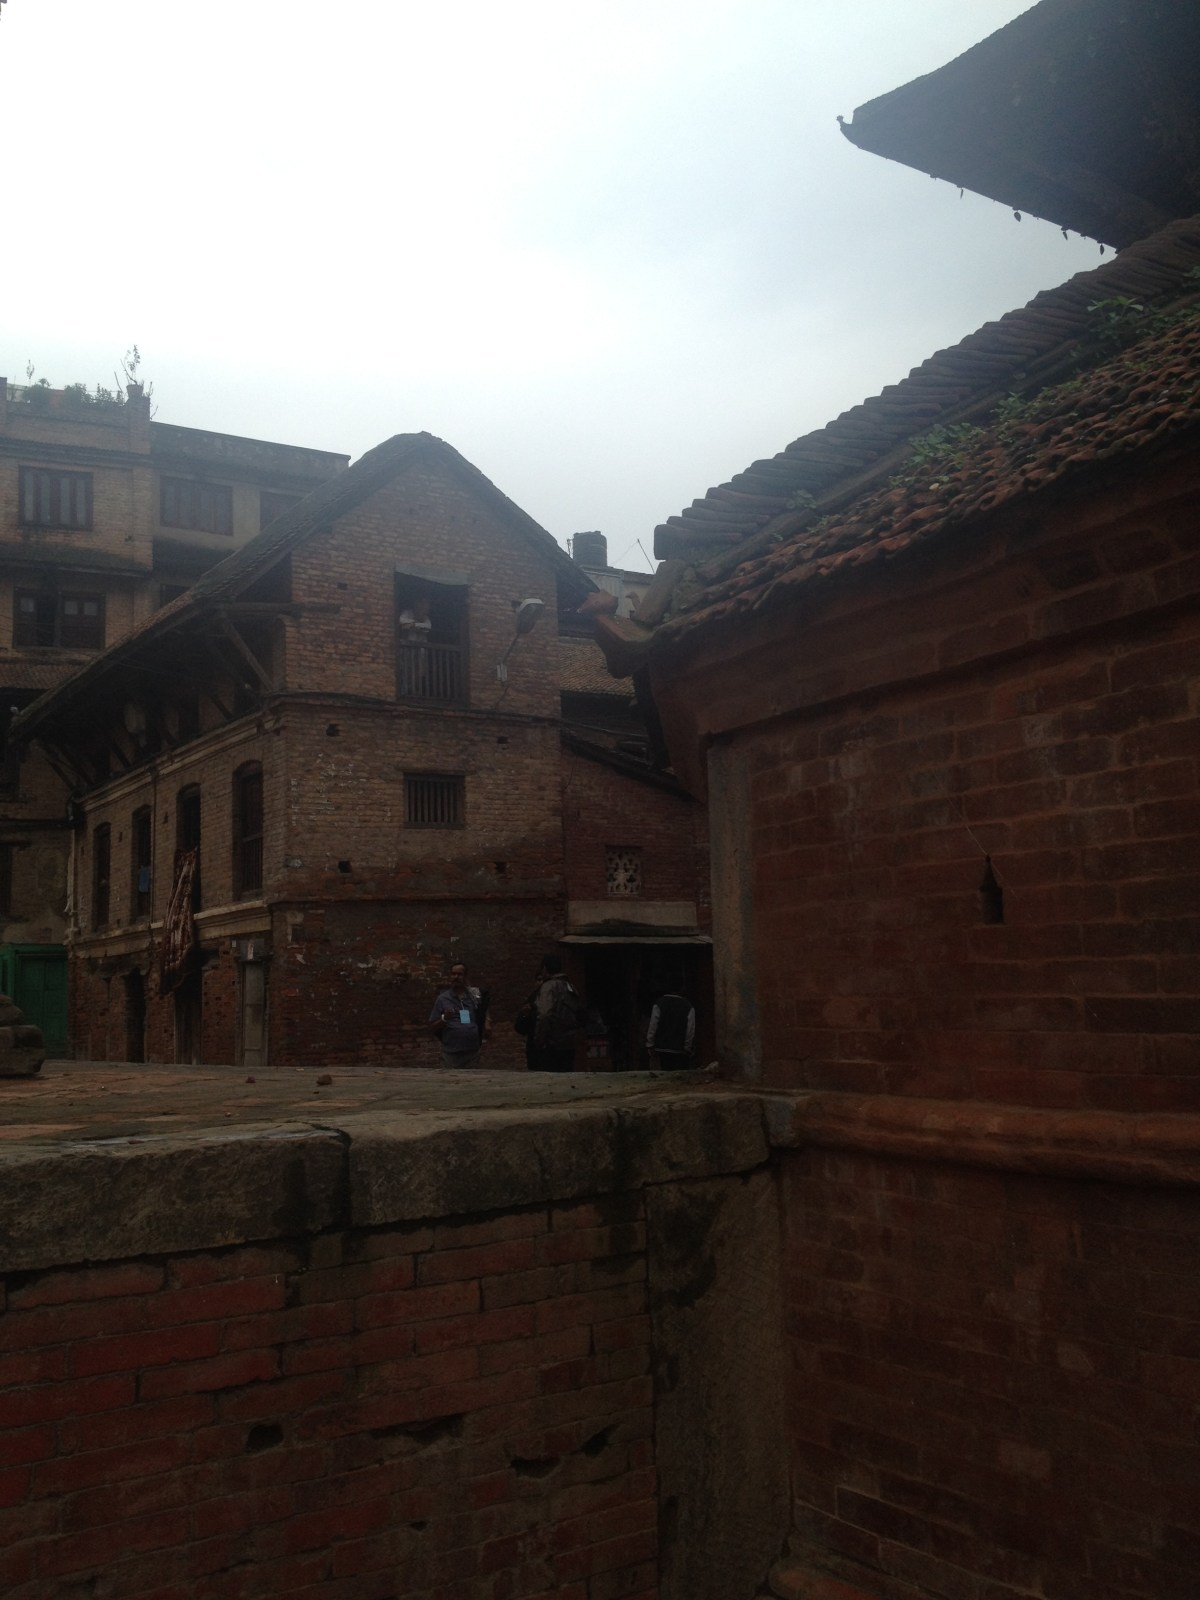 Nepal Travel: Restrooms at Durbar Square